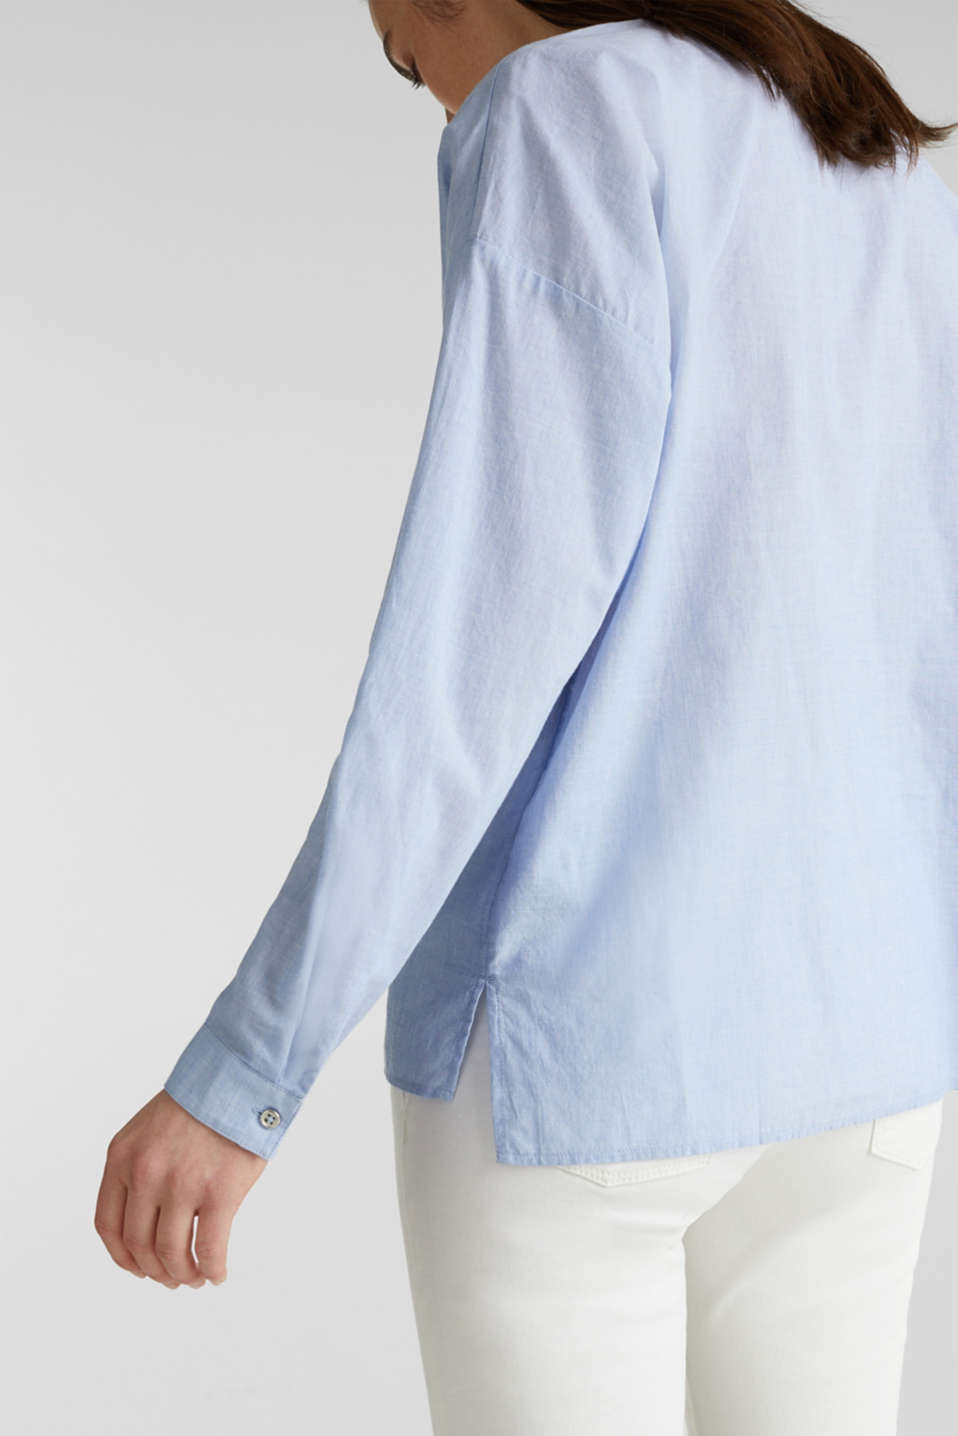 Blouse with turn-up sleeves, 100% cotton, LIGHT BLUE, detail image number 5